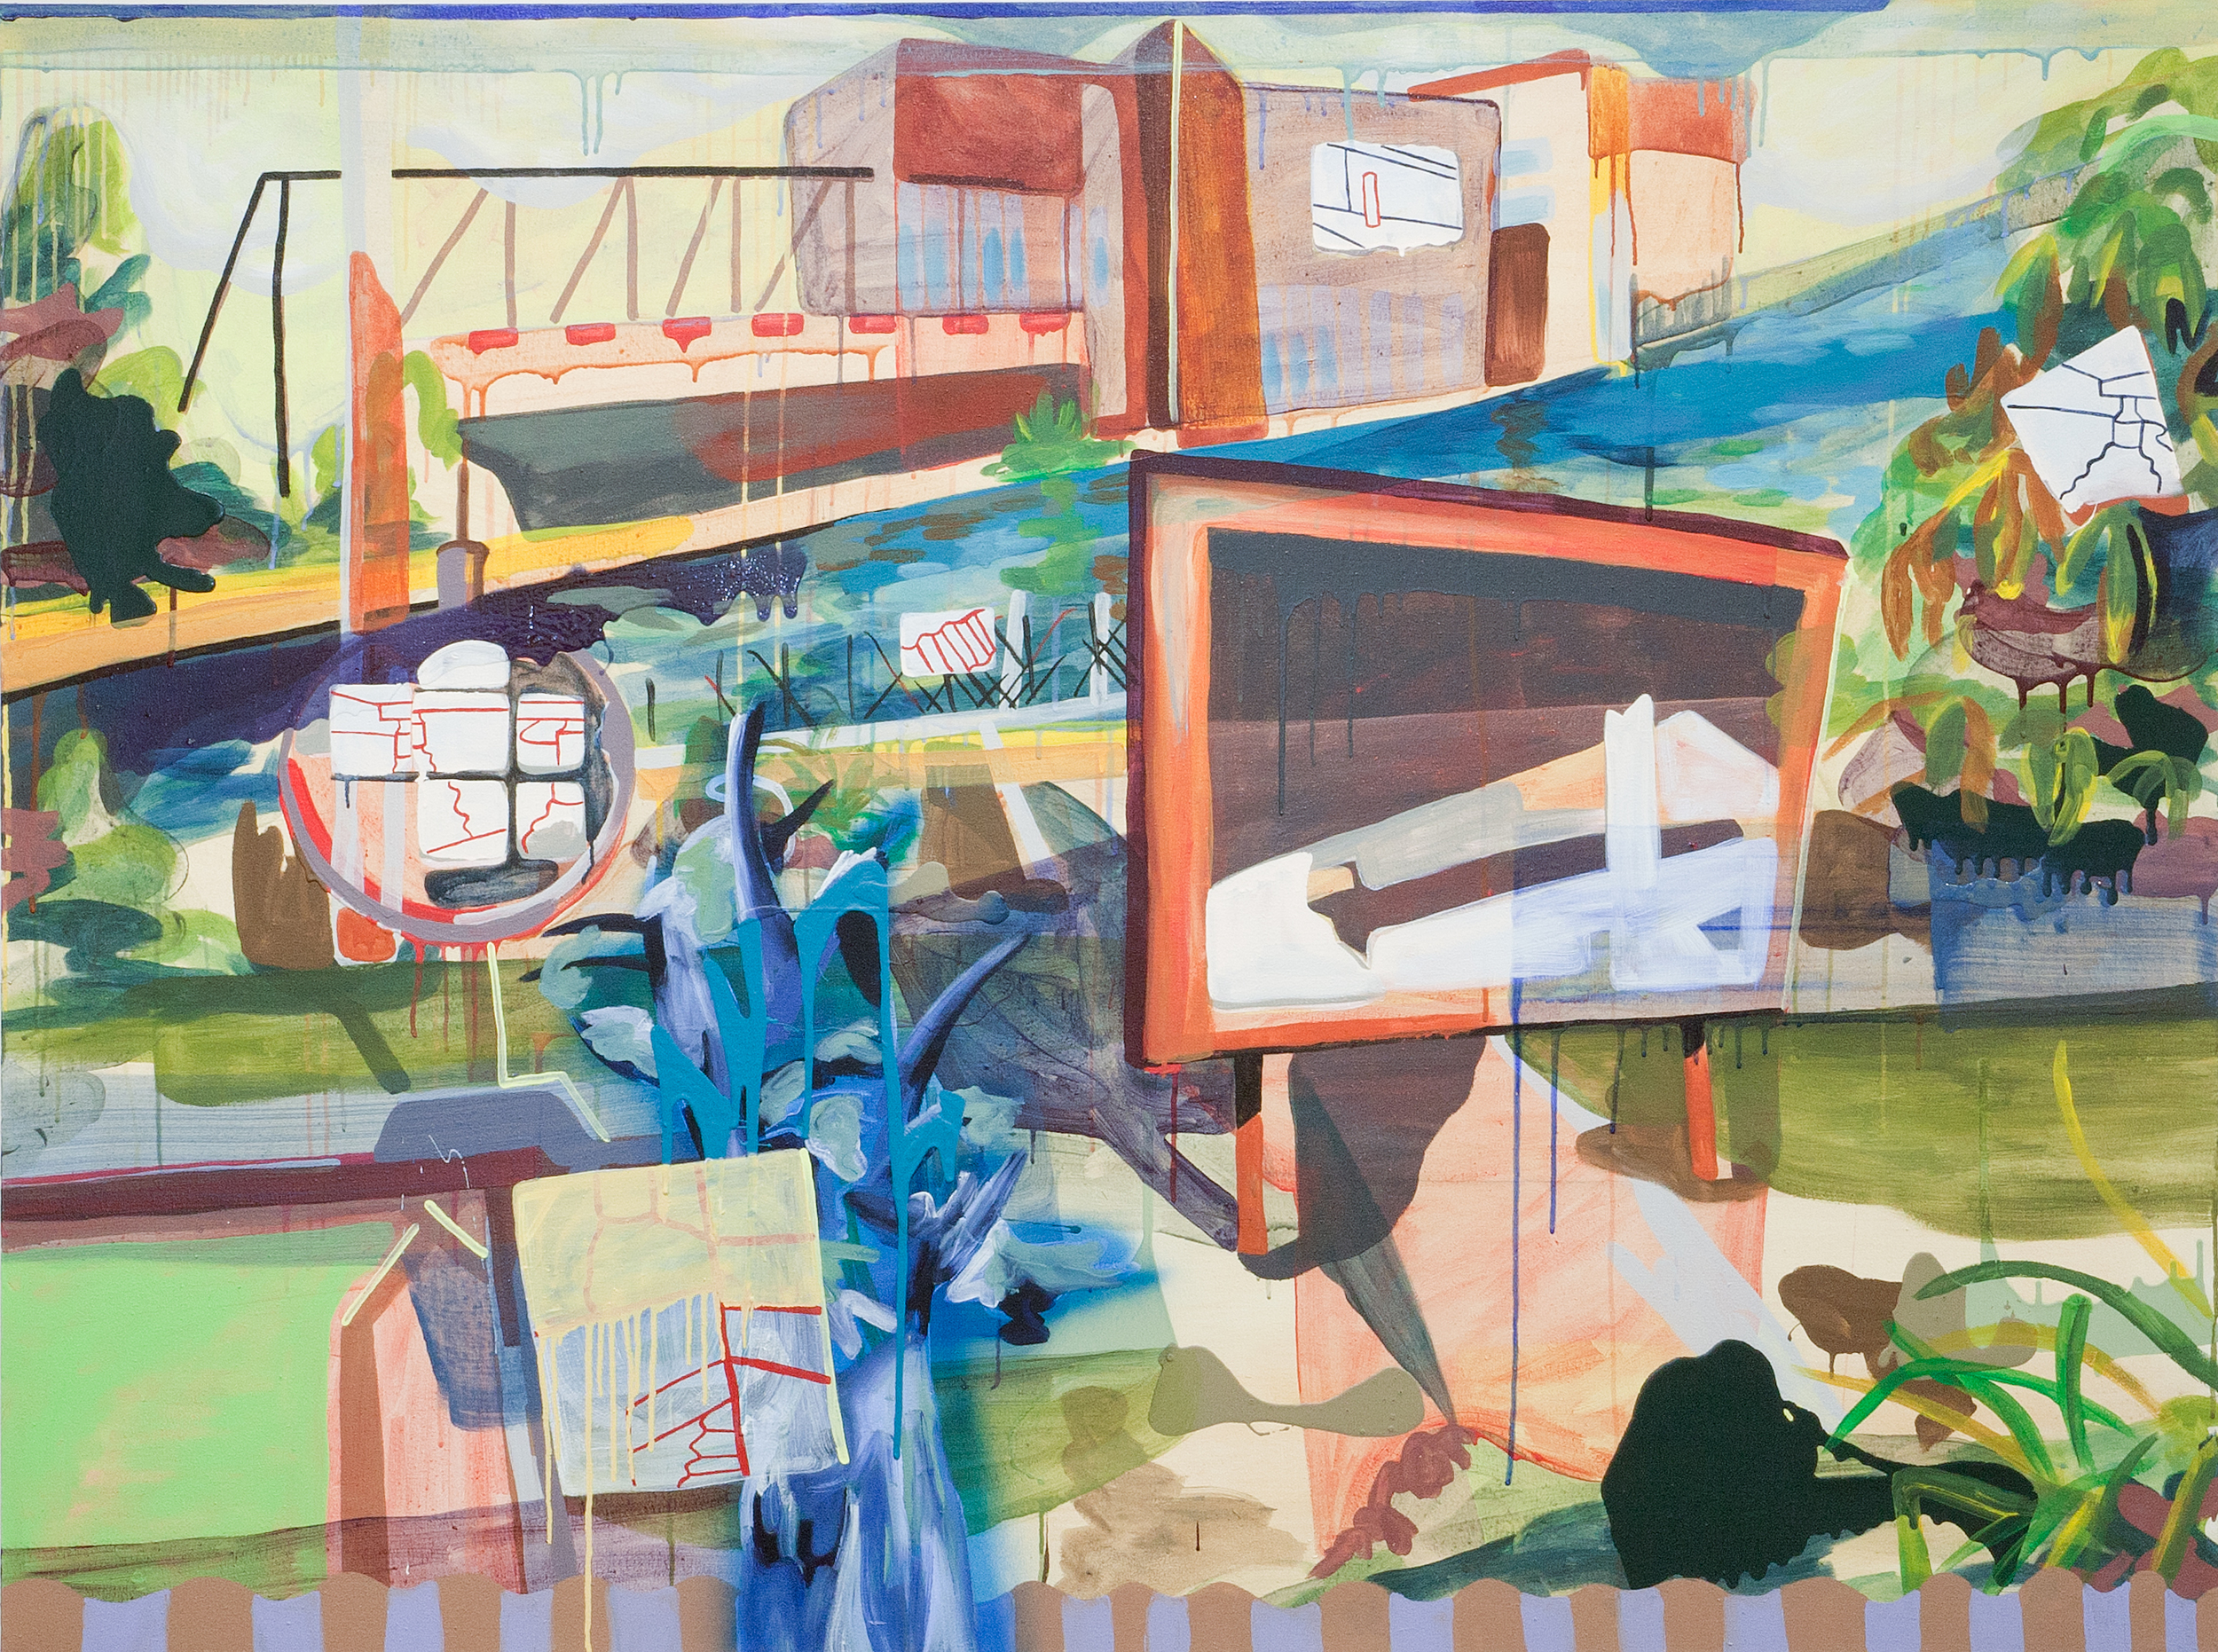 Factory-Direct Lakeshore  , 2015, acrylic on canvas, 54 x 72 inches.